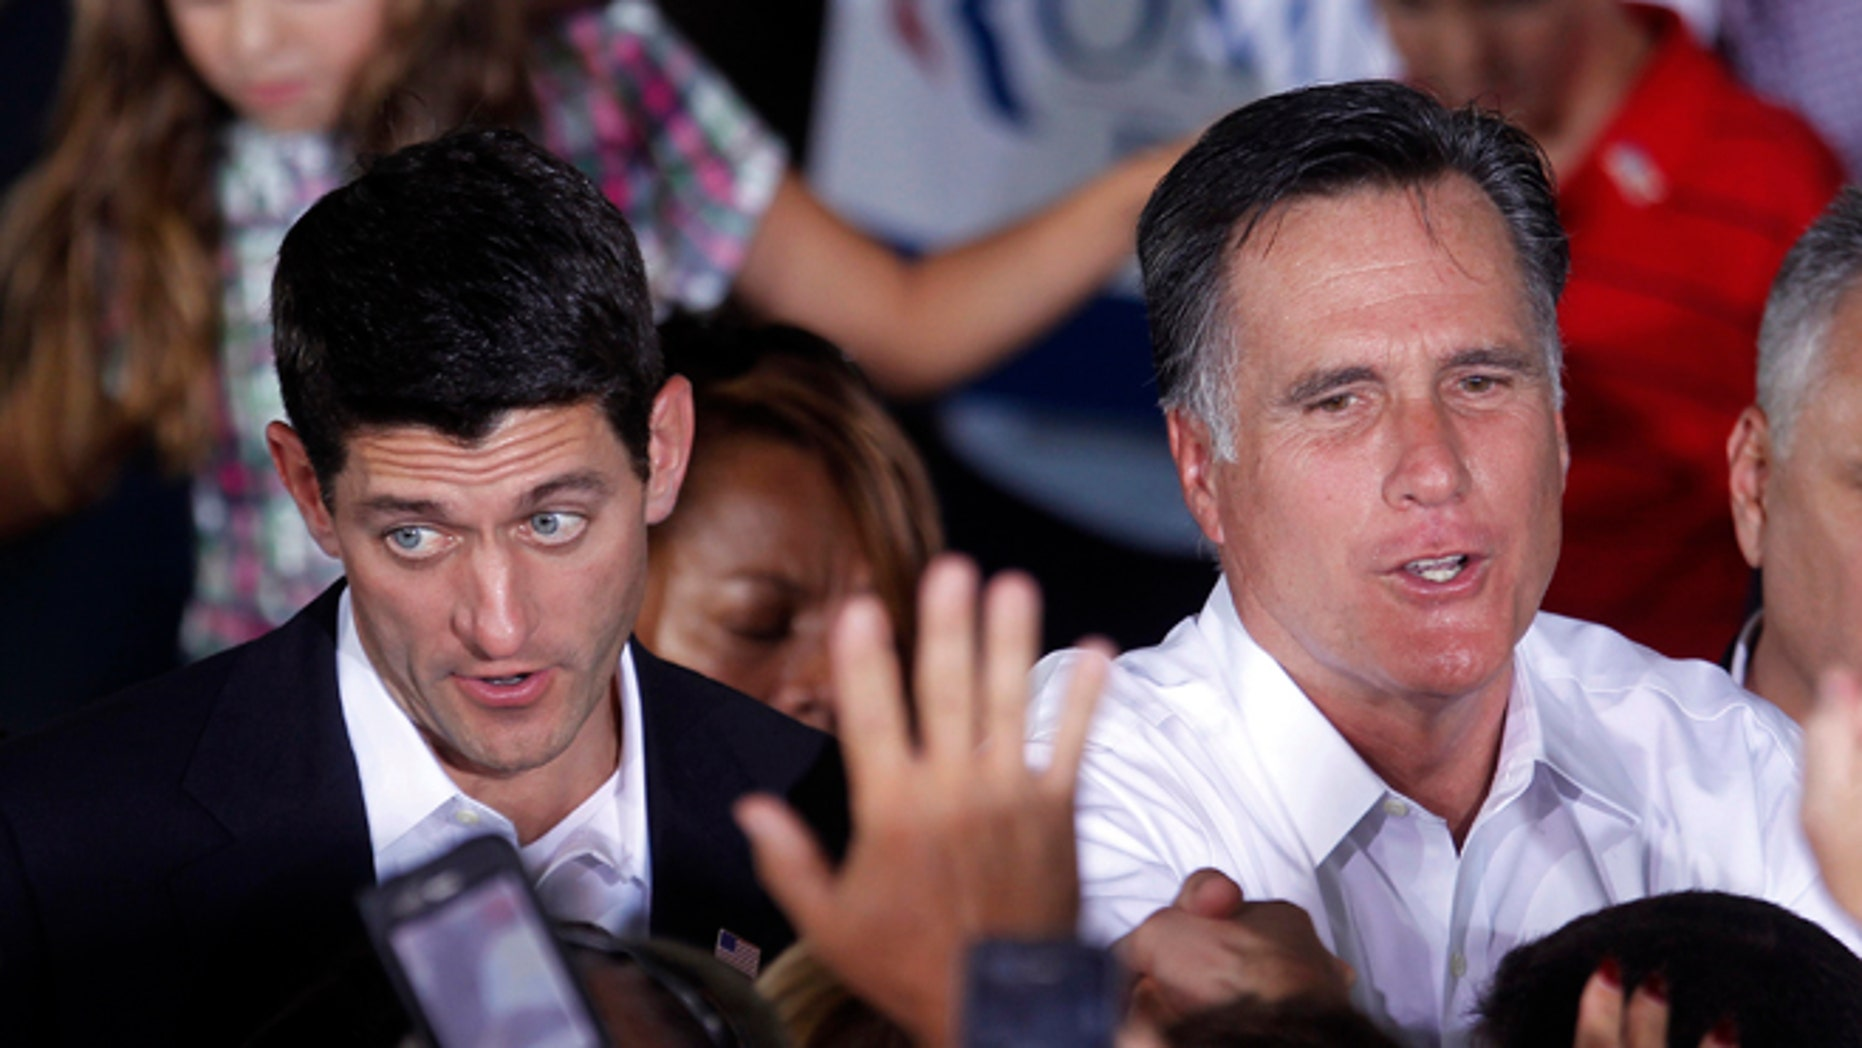 Aug. 11, 2012: Republican presidential candidate, former Massachusetts Gov. Mitt Romney, right, and his newly announced vice presidential running mate, Rep. Paul Ryan, R-Wis., left, greet supporters during a campaign rally in Manassas, Va.